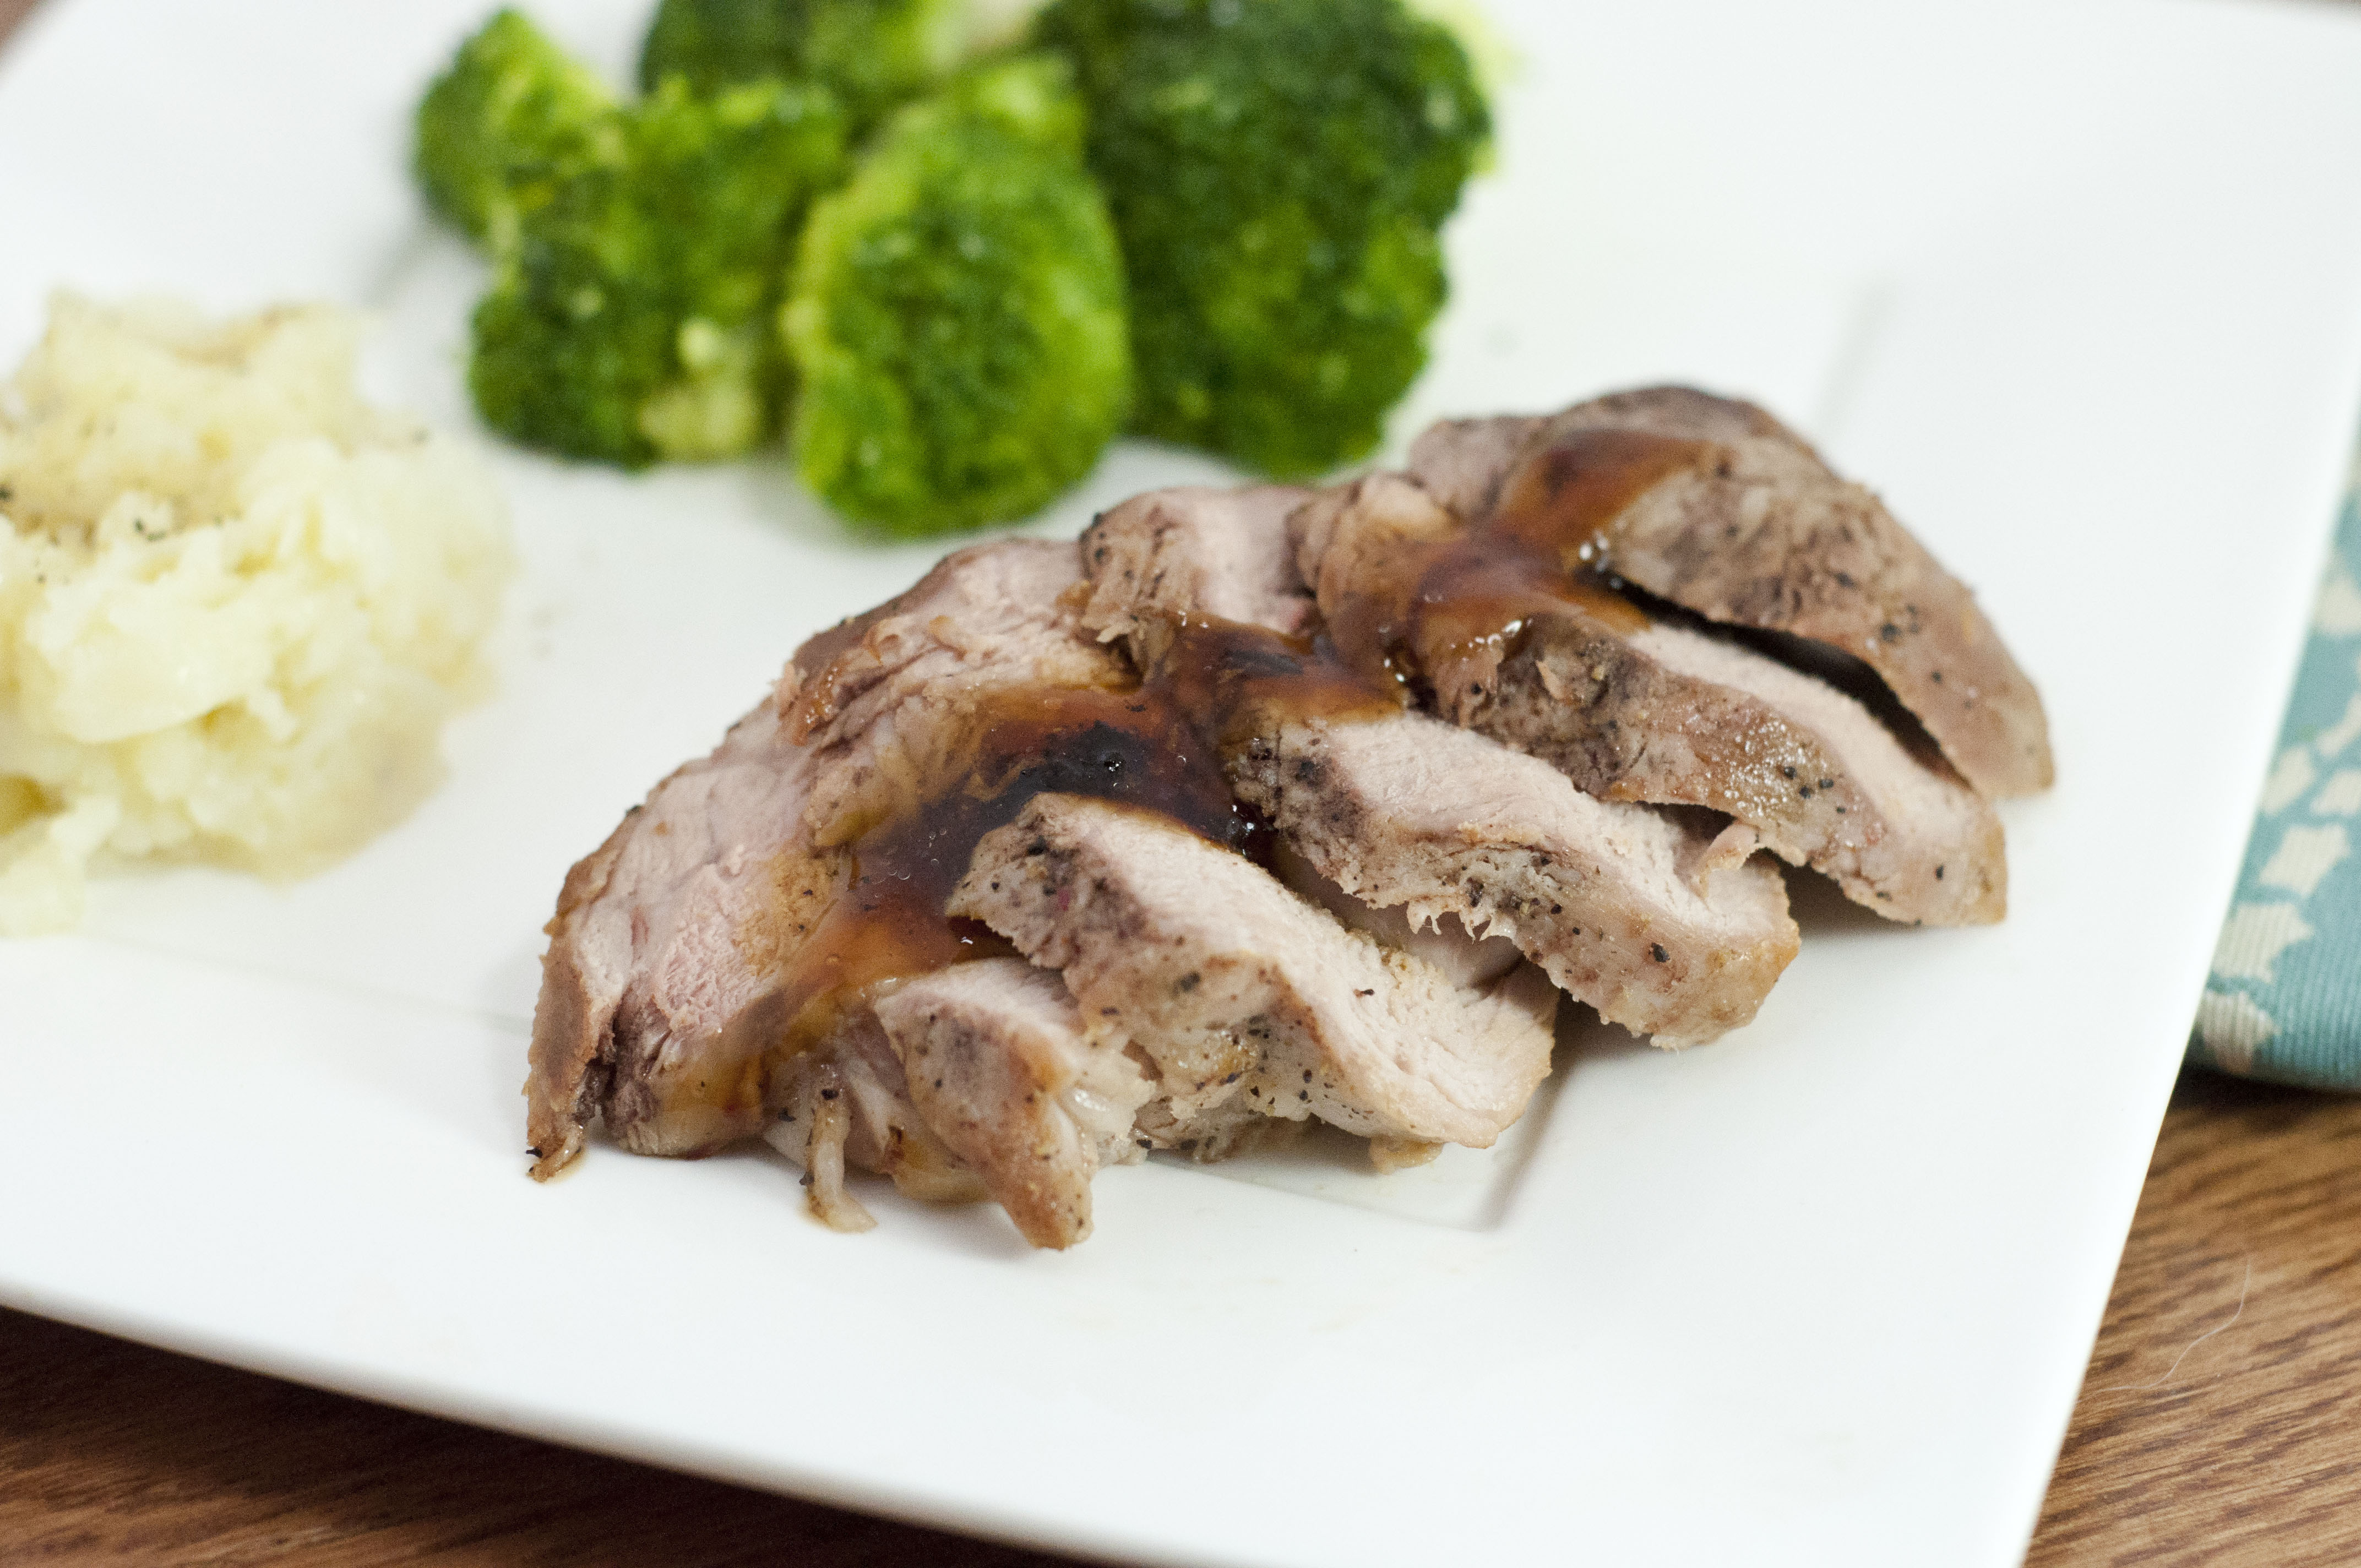 an image of brined teriyaki pork tenderloin with broccoli and potato in the background